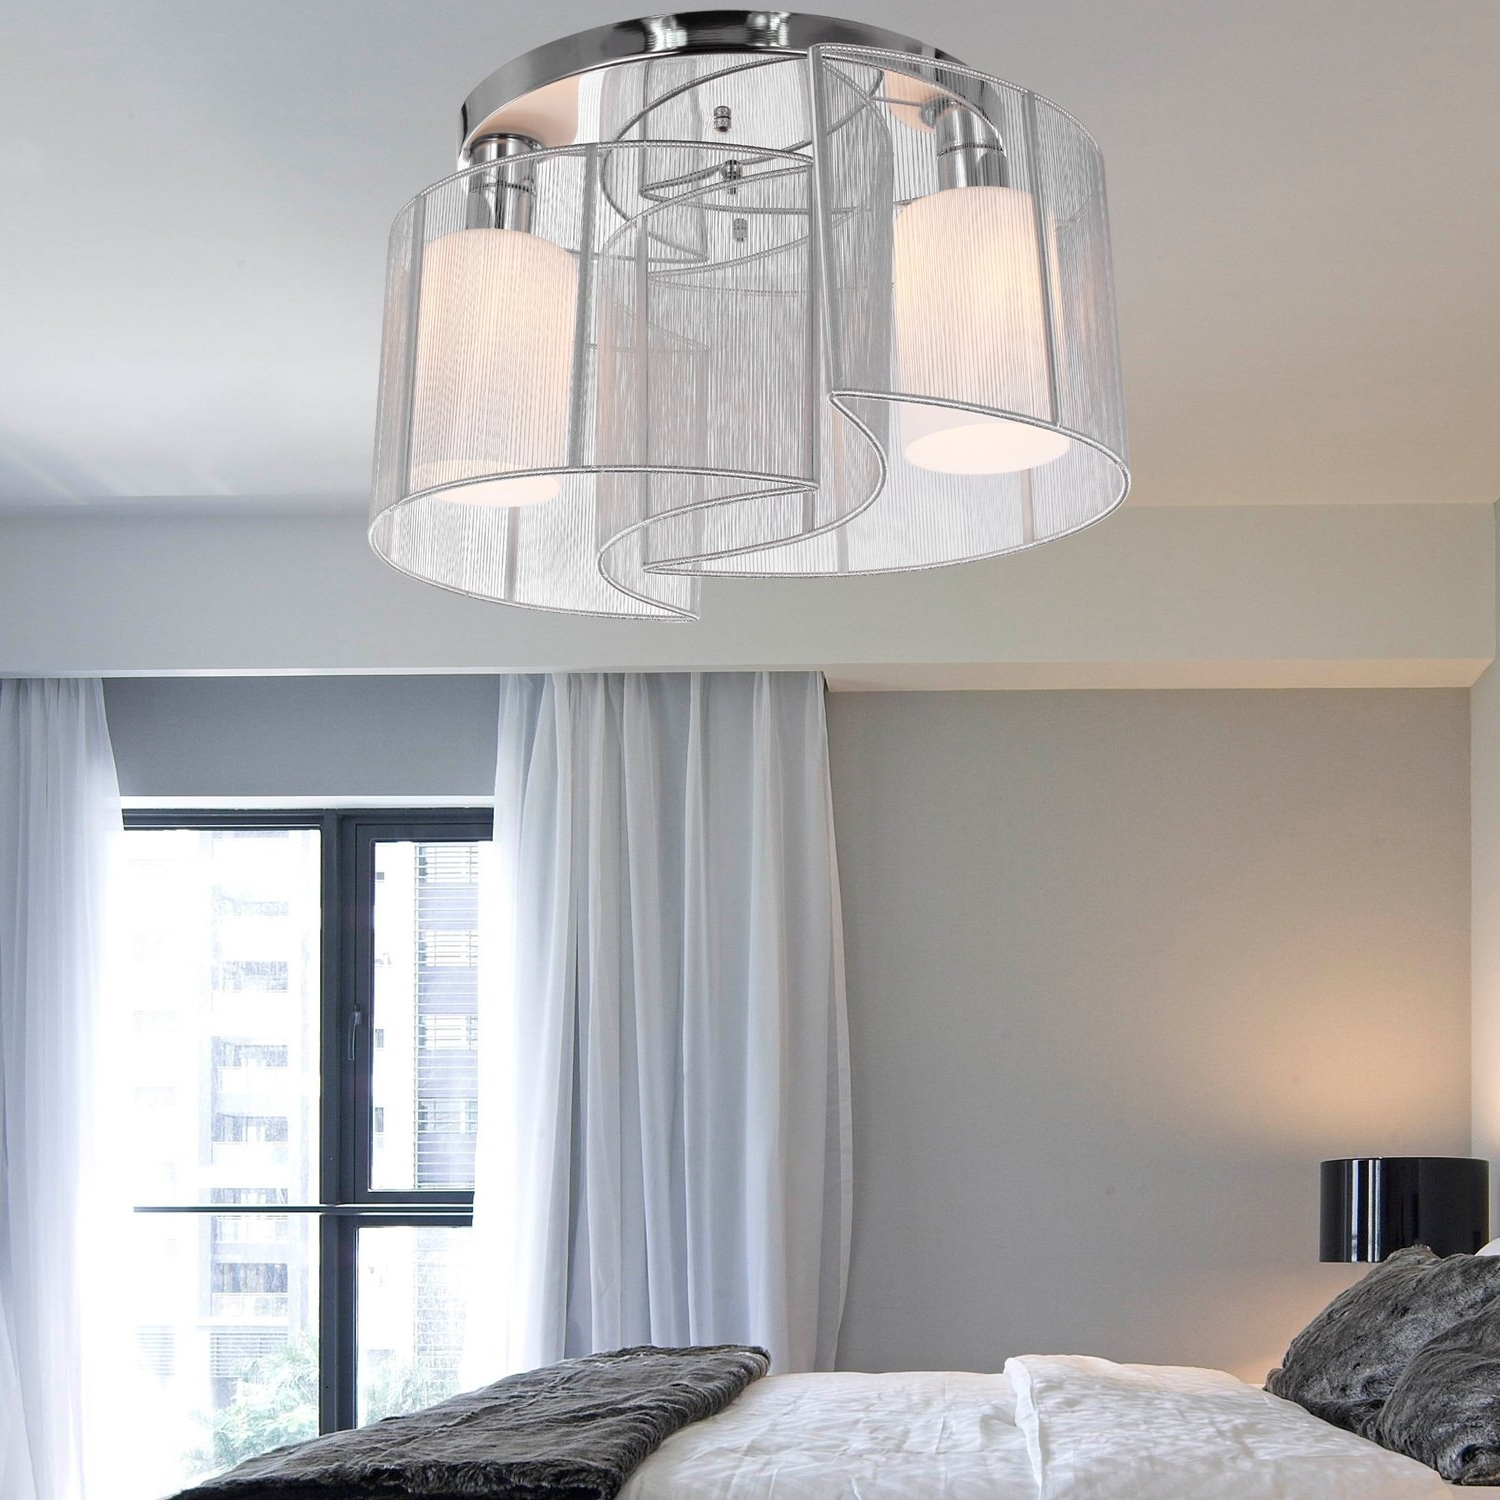 Chandelier Night Stand Lamps For Favorite Light Fixture : Night Stand Lamps Master Bedroom Ceiling Ideas (View 3 of 15)